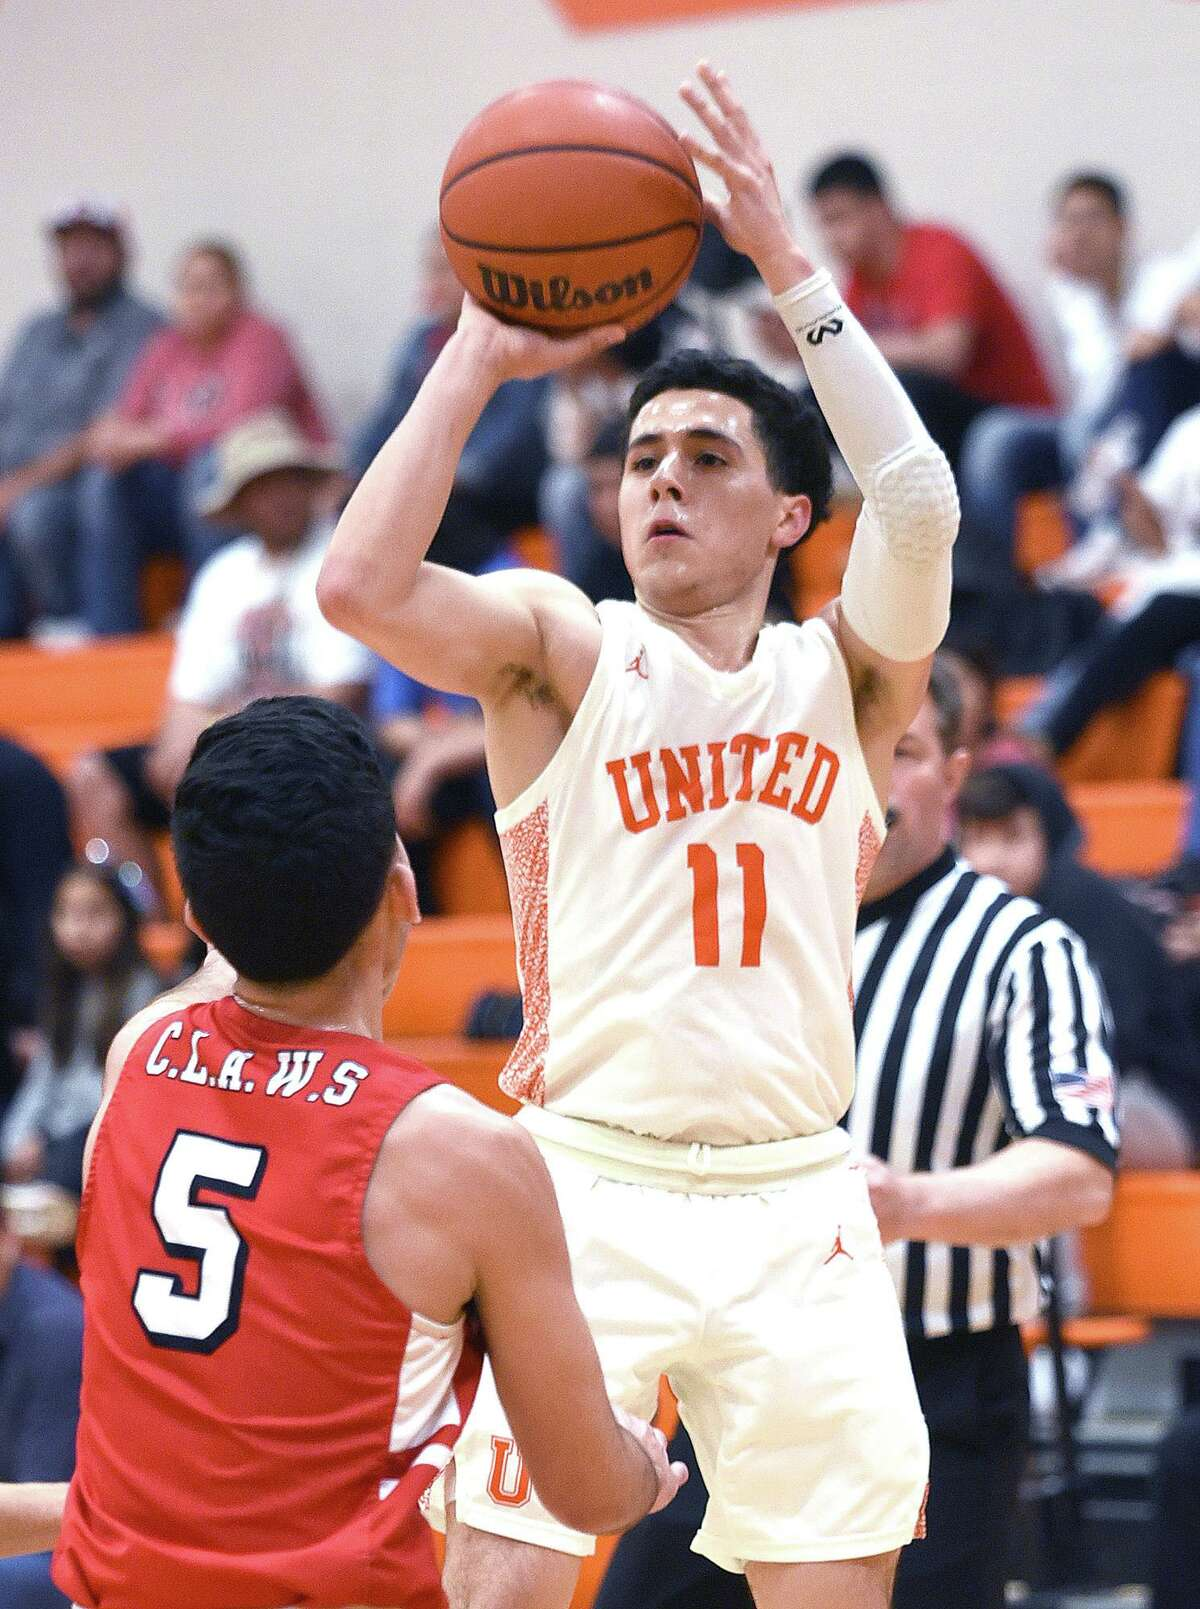 Alex Idrogo helped United win back-to-back District 29-6A titles this past season.